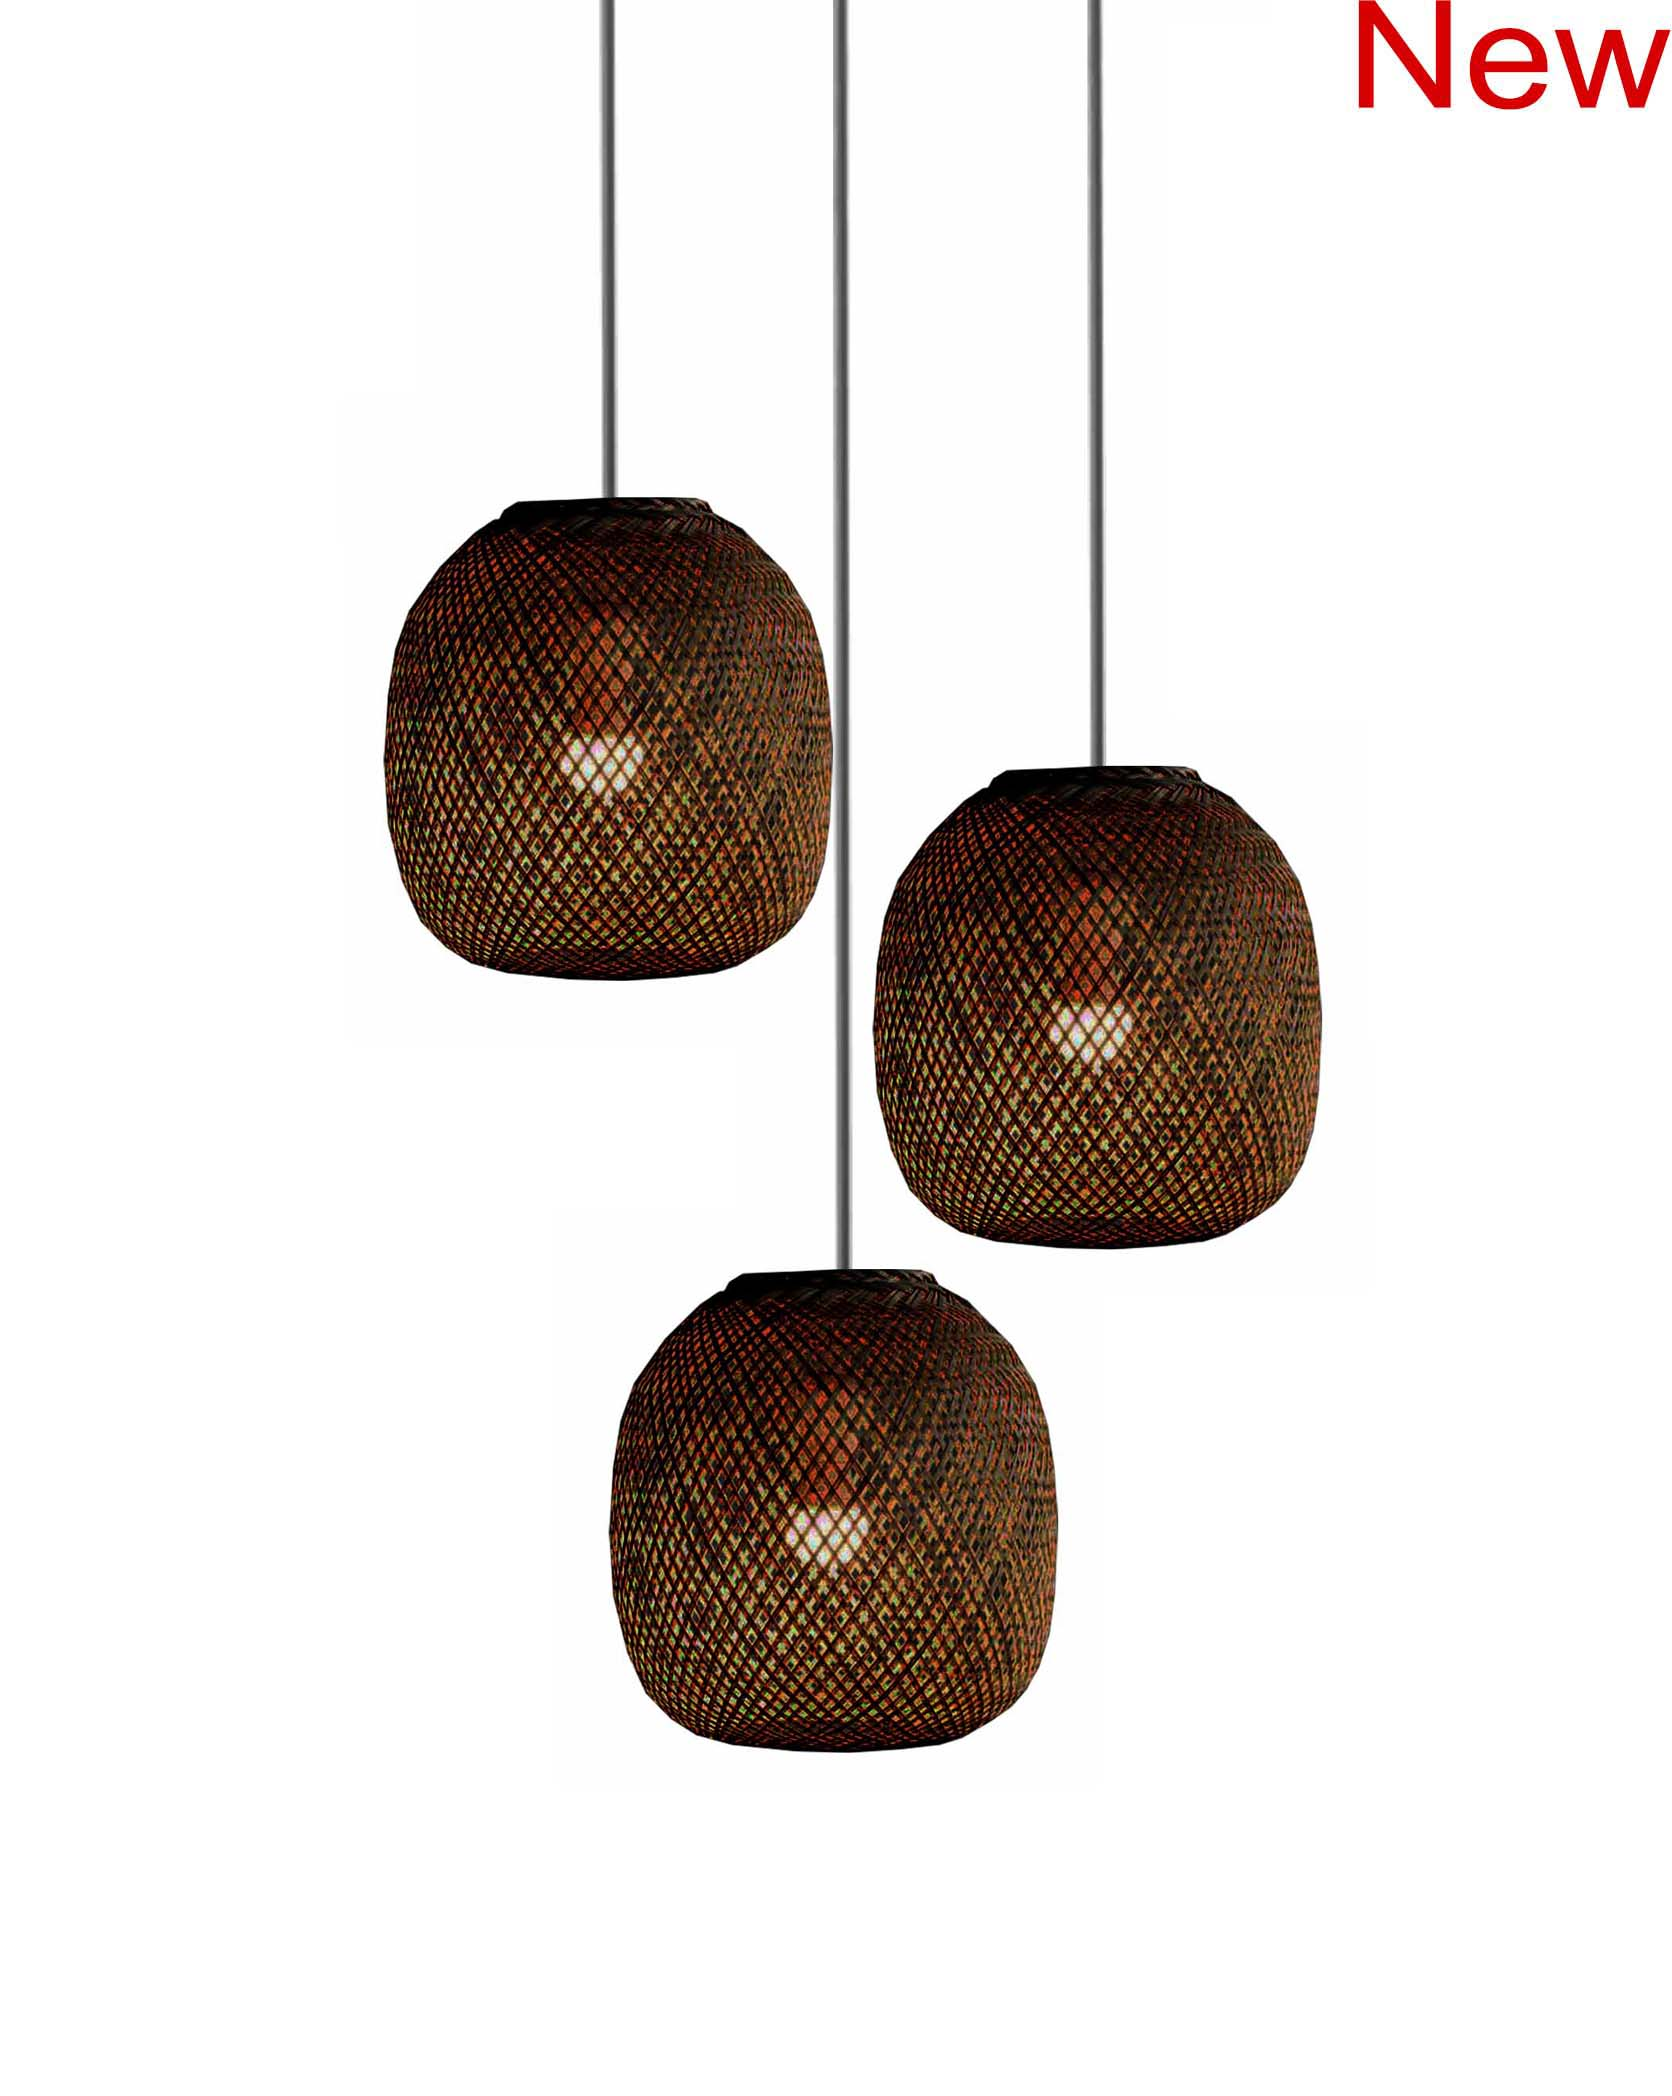 Bamboo Ball Chandelier product photo #2